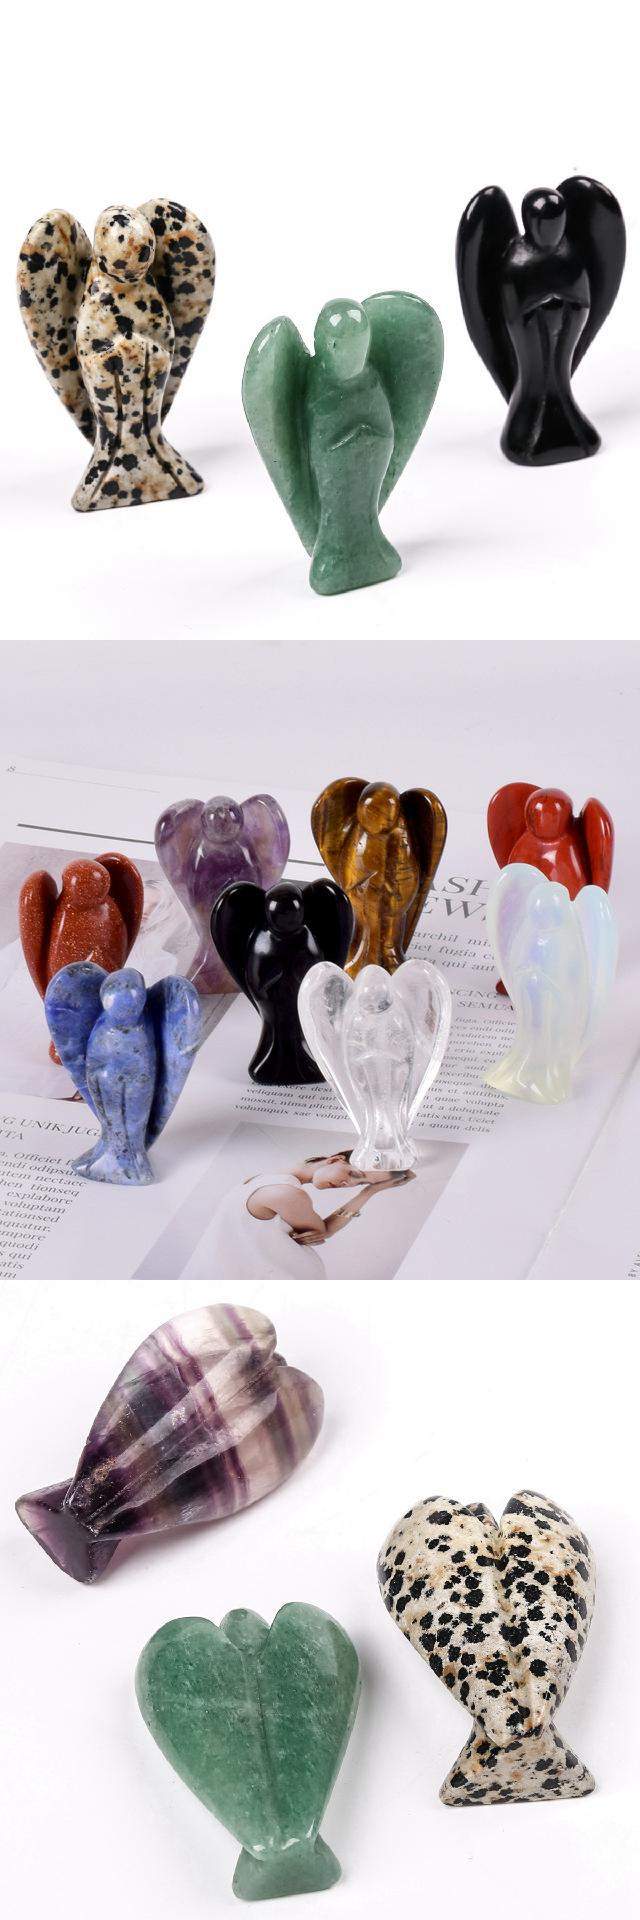 Crystals stones Angels 3' Beautiful Gemstone Angel For Love and Marriage Crafts Stock Metaphysical And New Age Gemstone Products